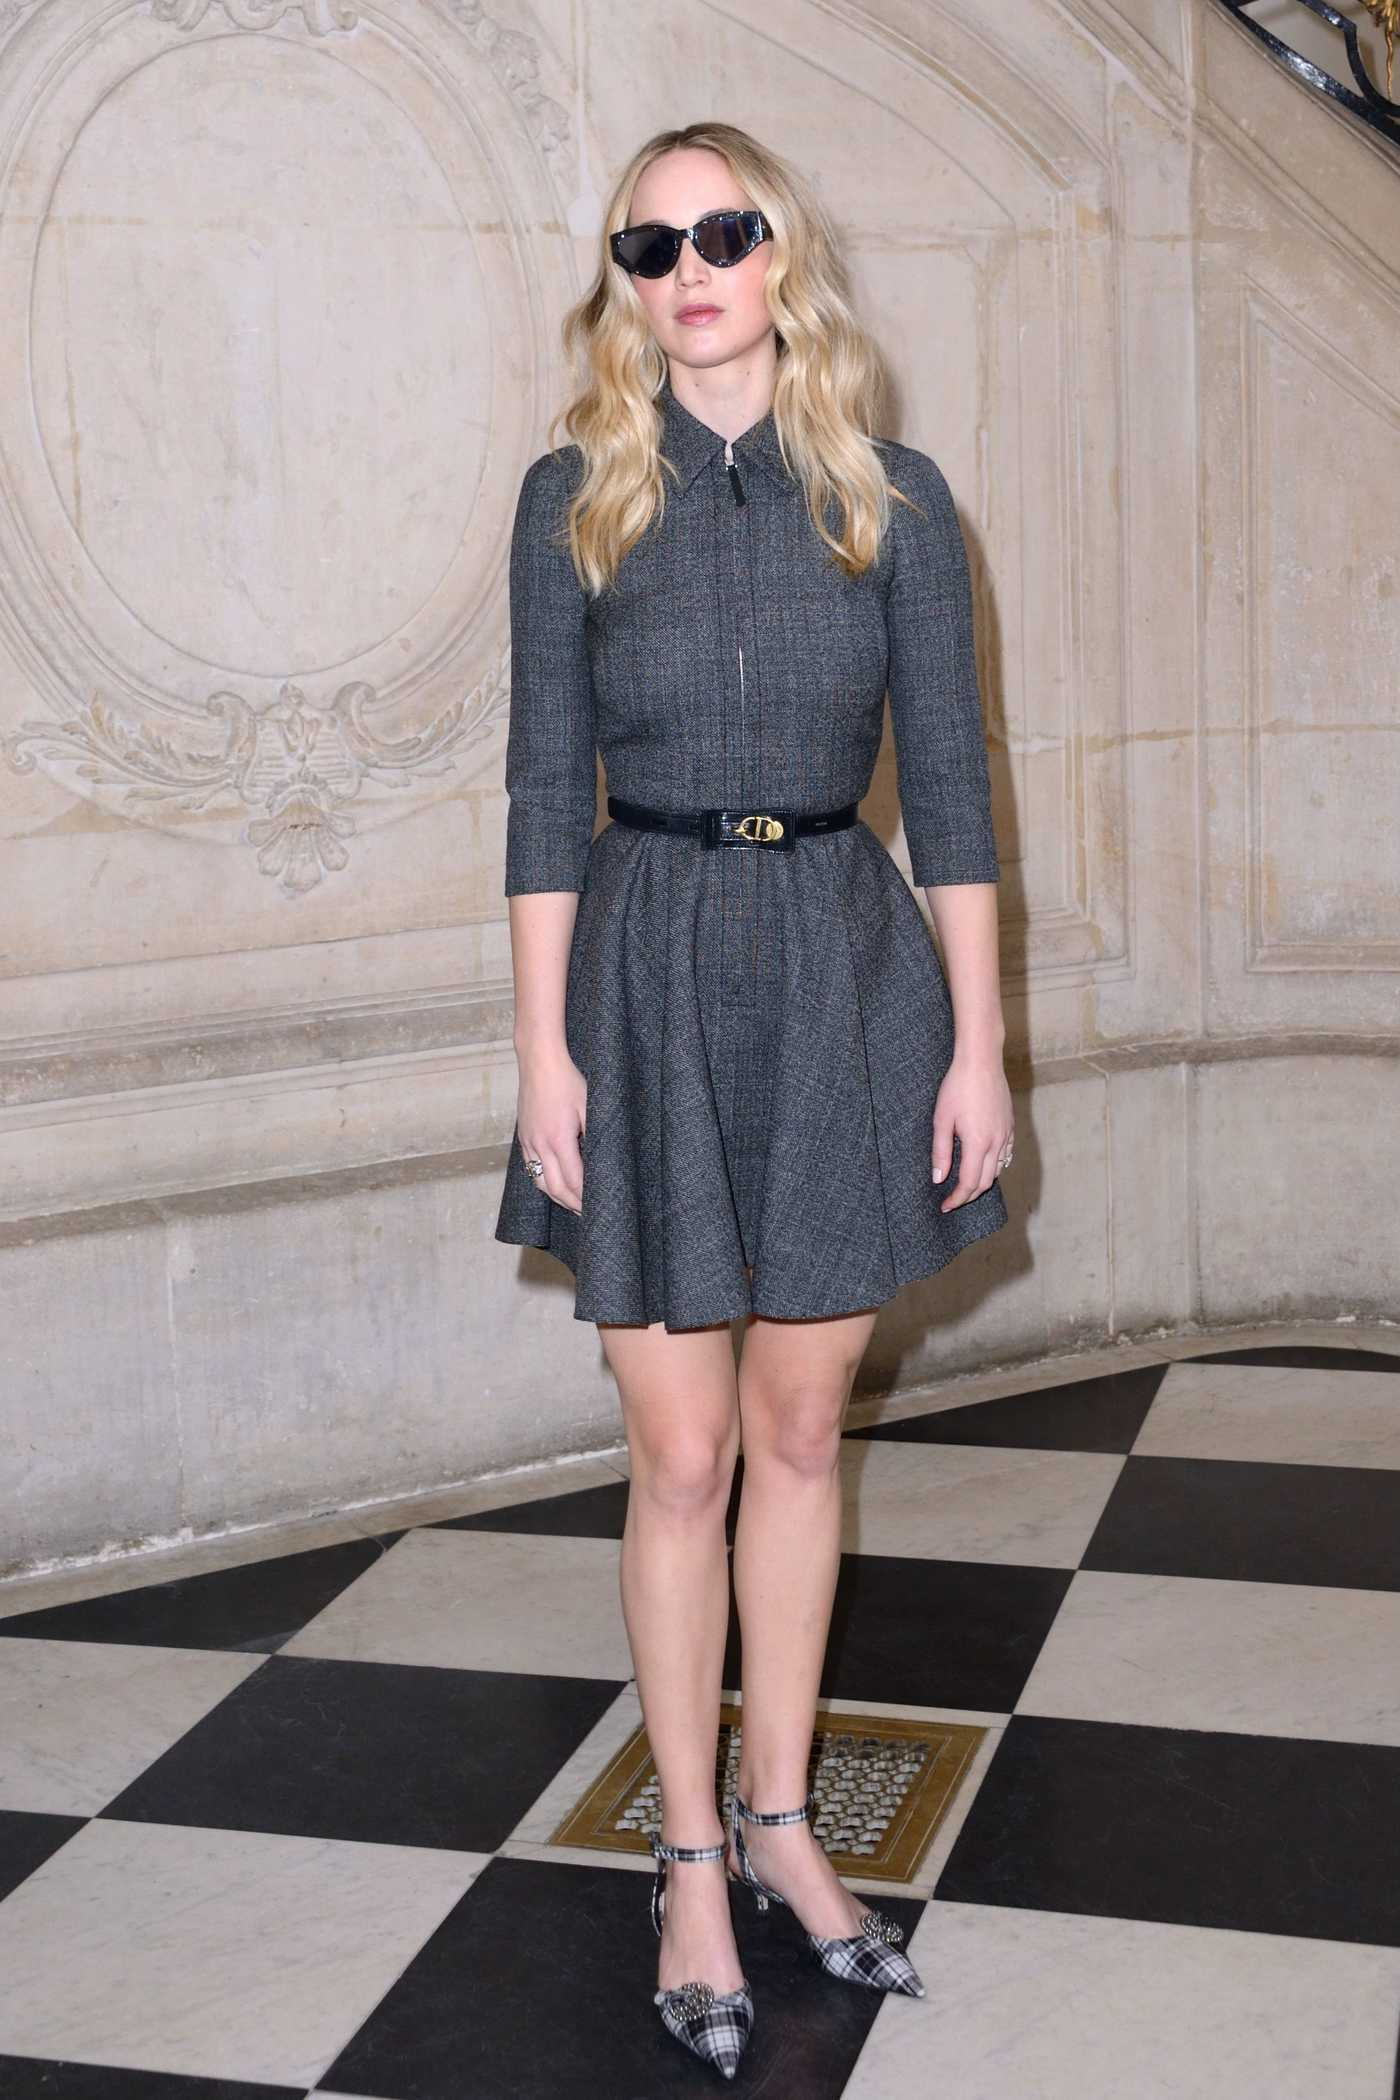 Jennifer Lawrence Attends the Christian Dior Show During Paris Fashion Week in Paris 02/26/2019